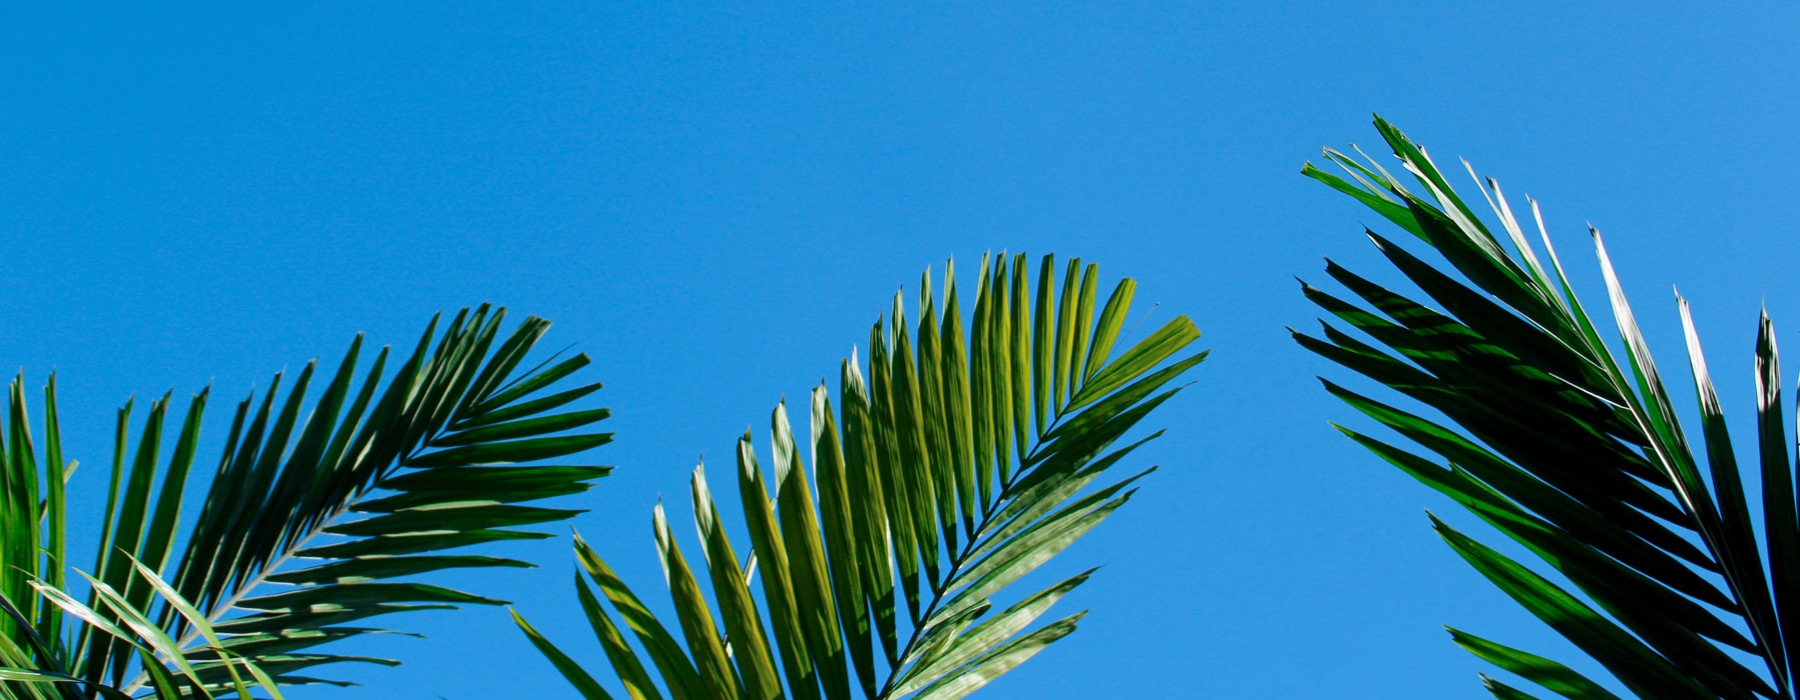 artsy shot of palm tree and sky